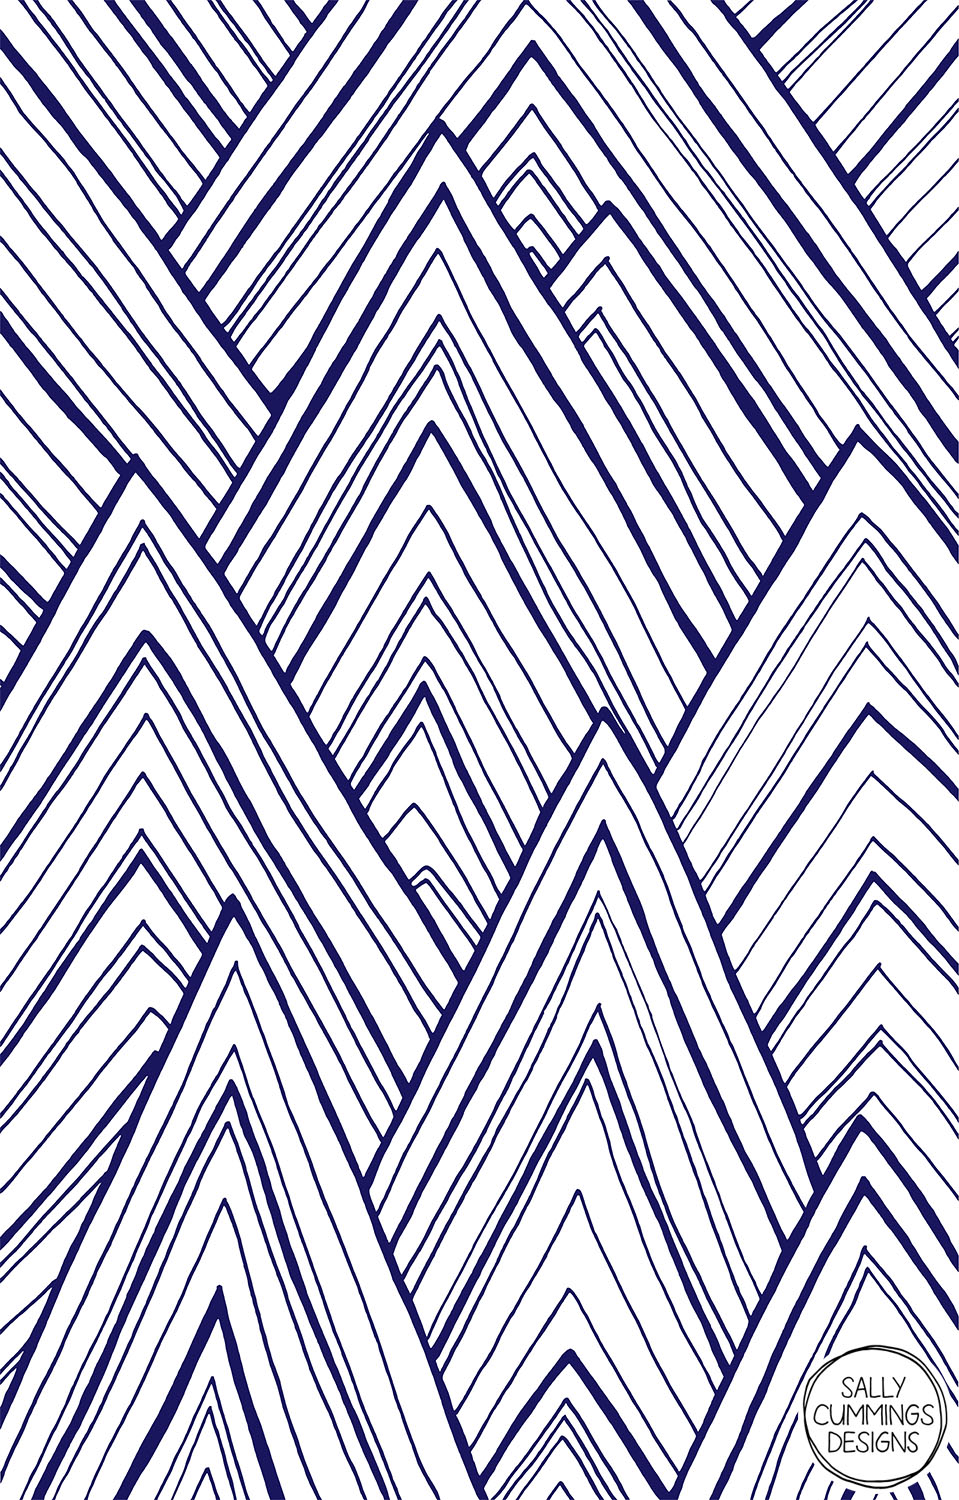 Sally Cummings Designs - Stripe Mountains design (dark blue)